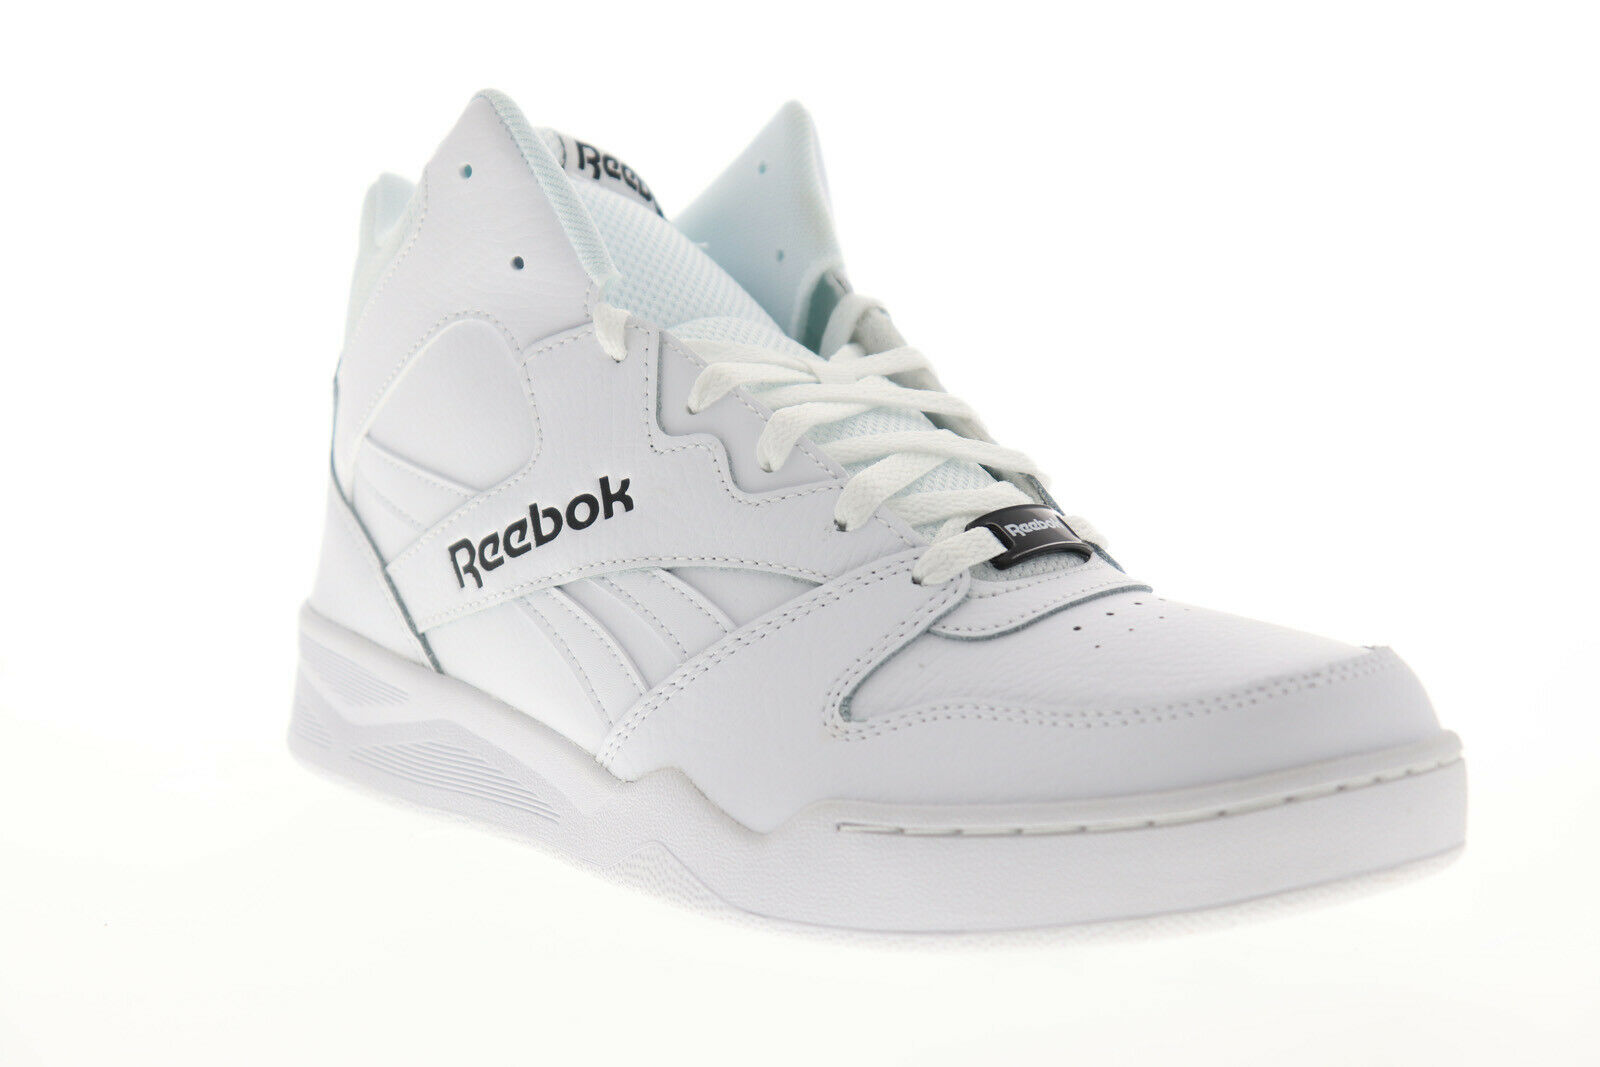 Reebok Royal Bb4500H2 Xe Mens White Wide 2E Casual High Top Sneakers Shoes